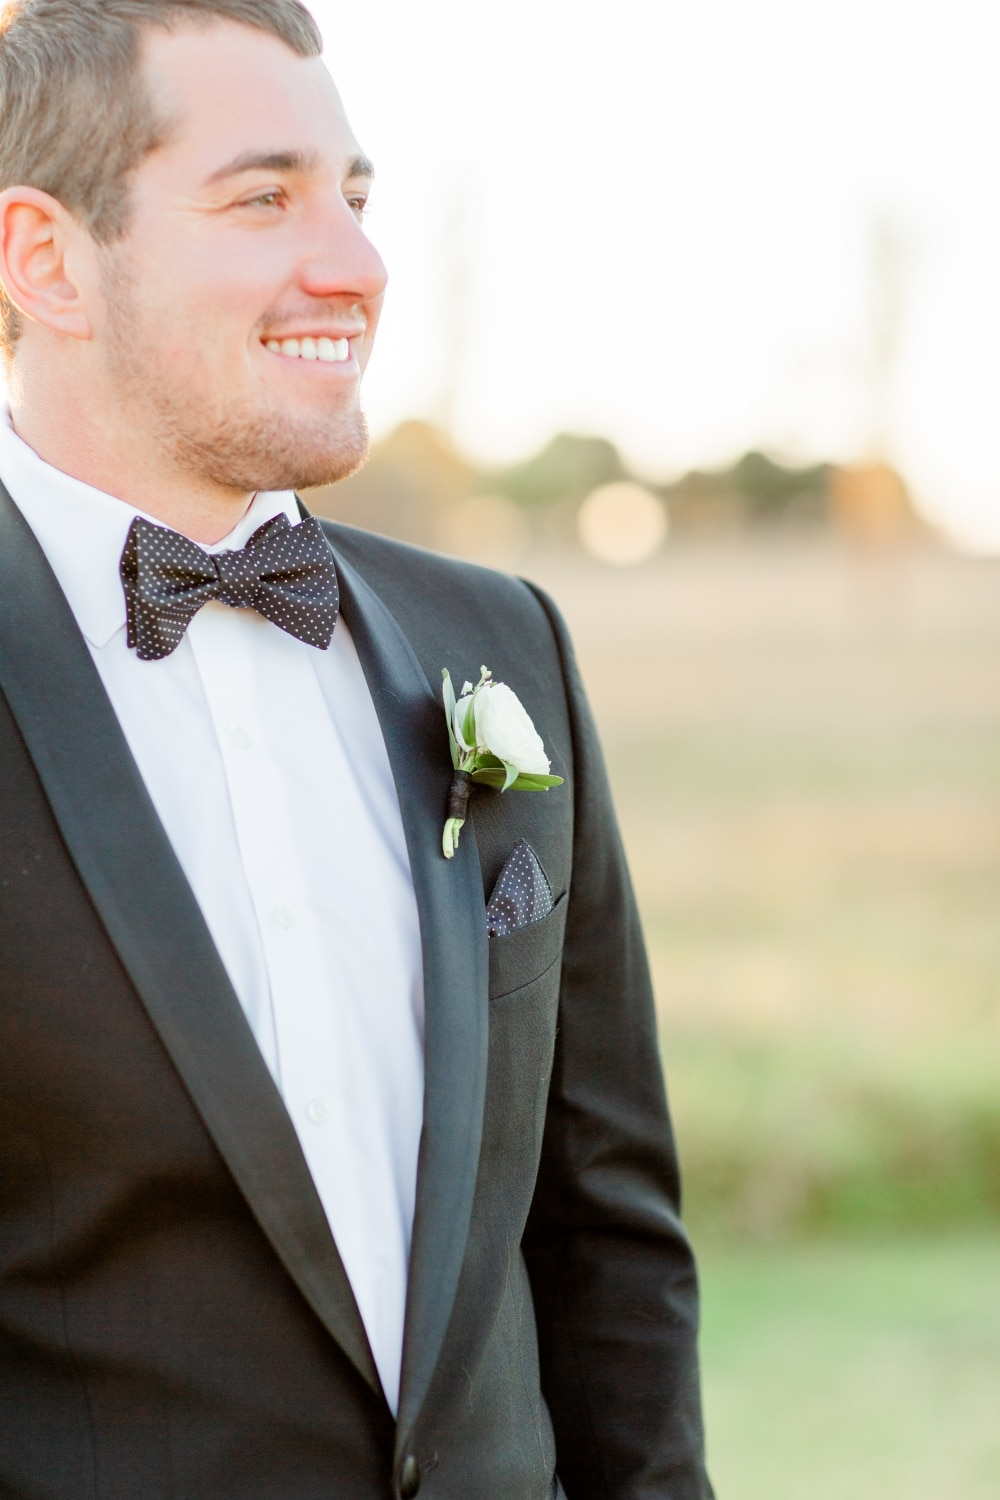 groom smiling in black tuxedo with white rose boutonniere